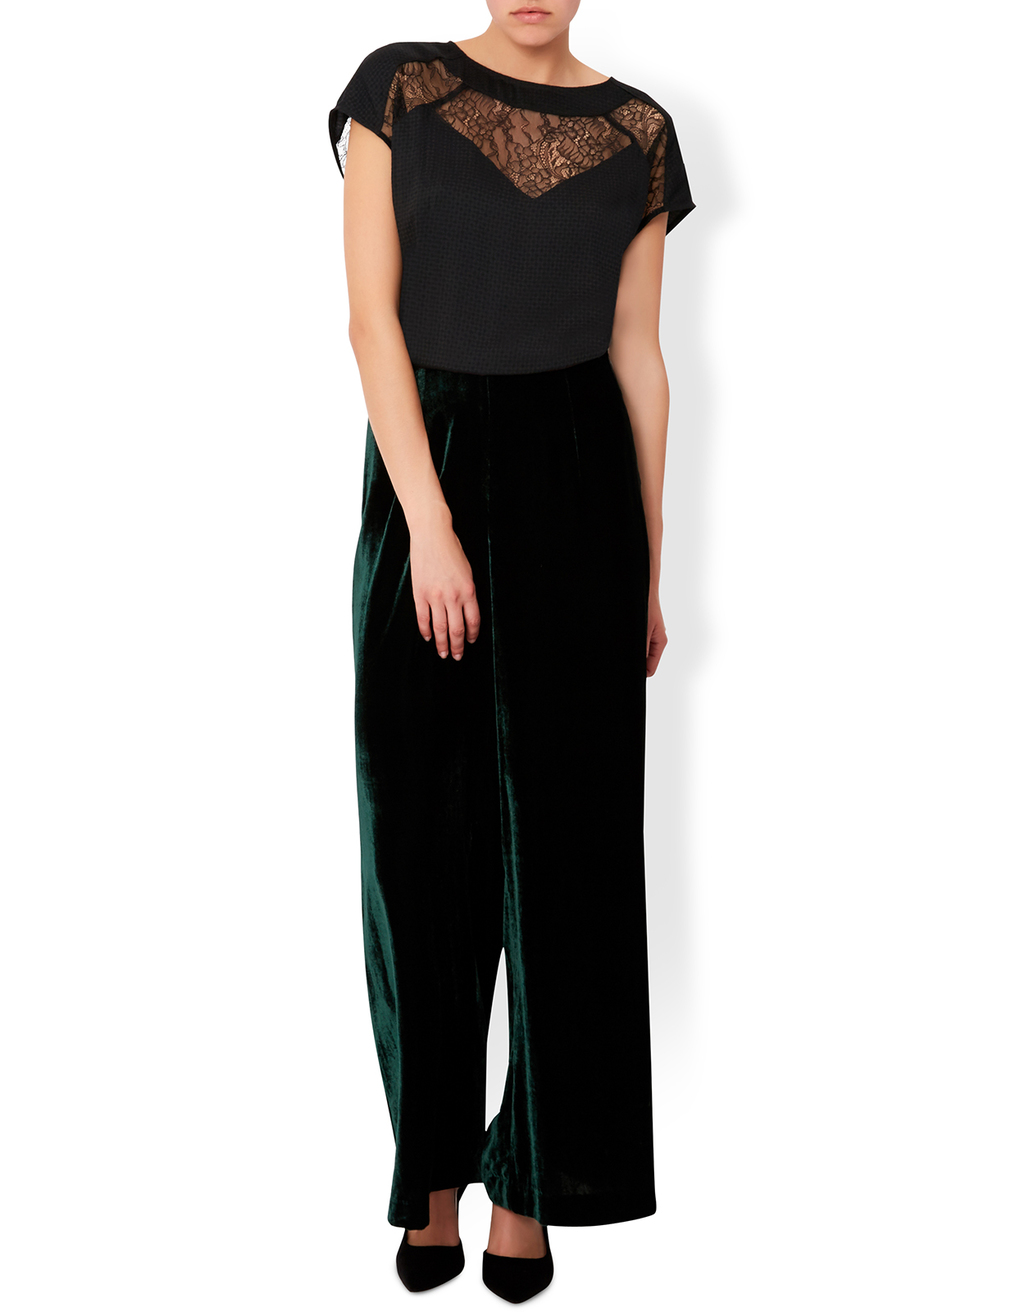 Thistle Lace Top - pattern: plain; bust detail: sheer at bust; style: blouse; predominant colour: black; occasions: evening; length: standard; fibres: polyester/polyamide - mix; fit: loose; neckline: crew; sleeve length: short sleeve; sleeve style: standard; texture group: sheer fabrics/chiffon/organza etc.; pattern type: fabric; season: a/w 2016; wardrobe: event